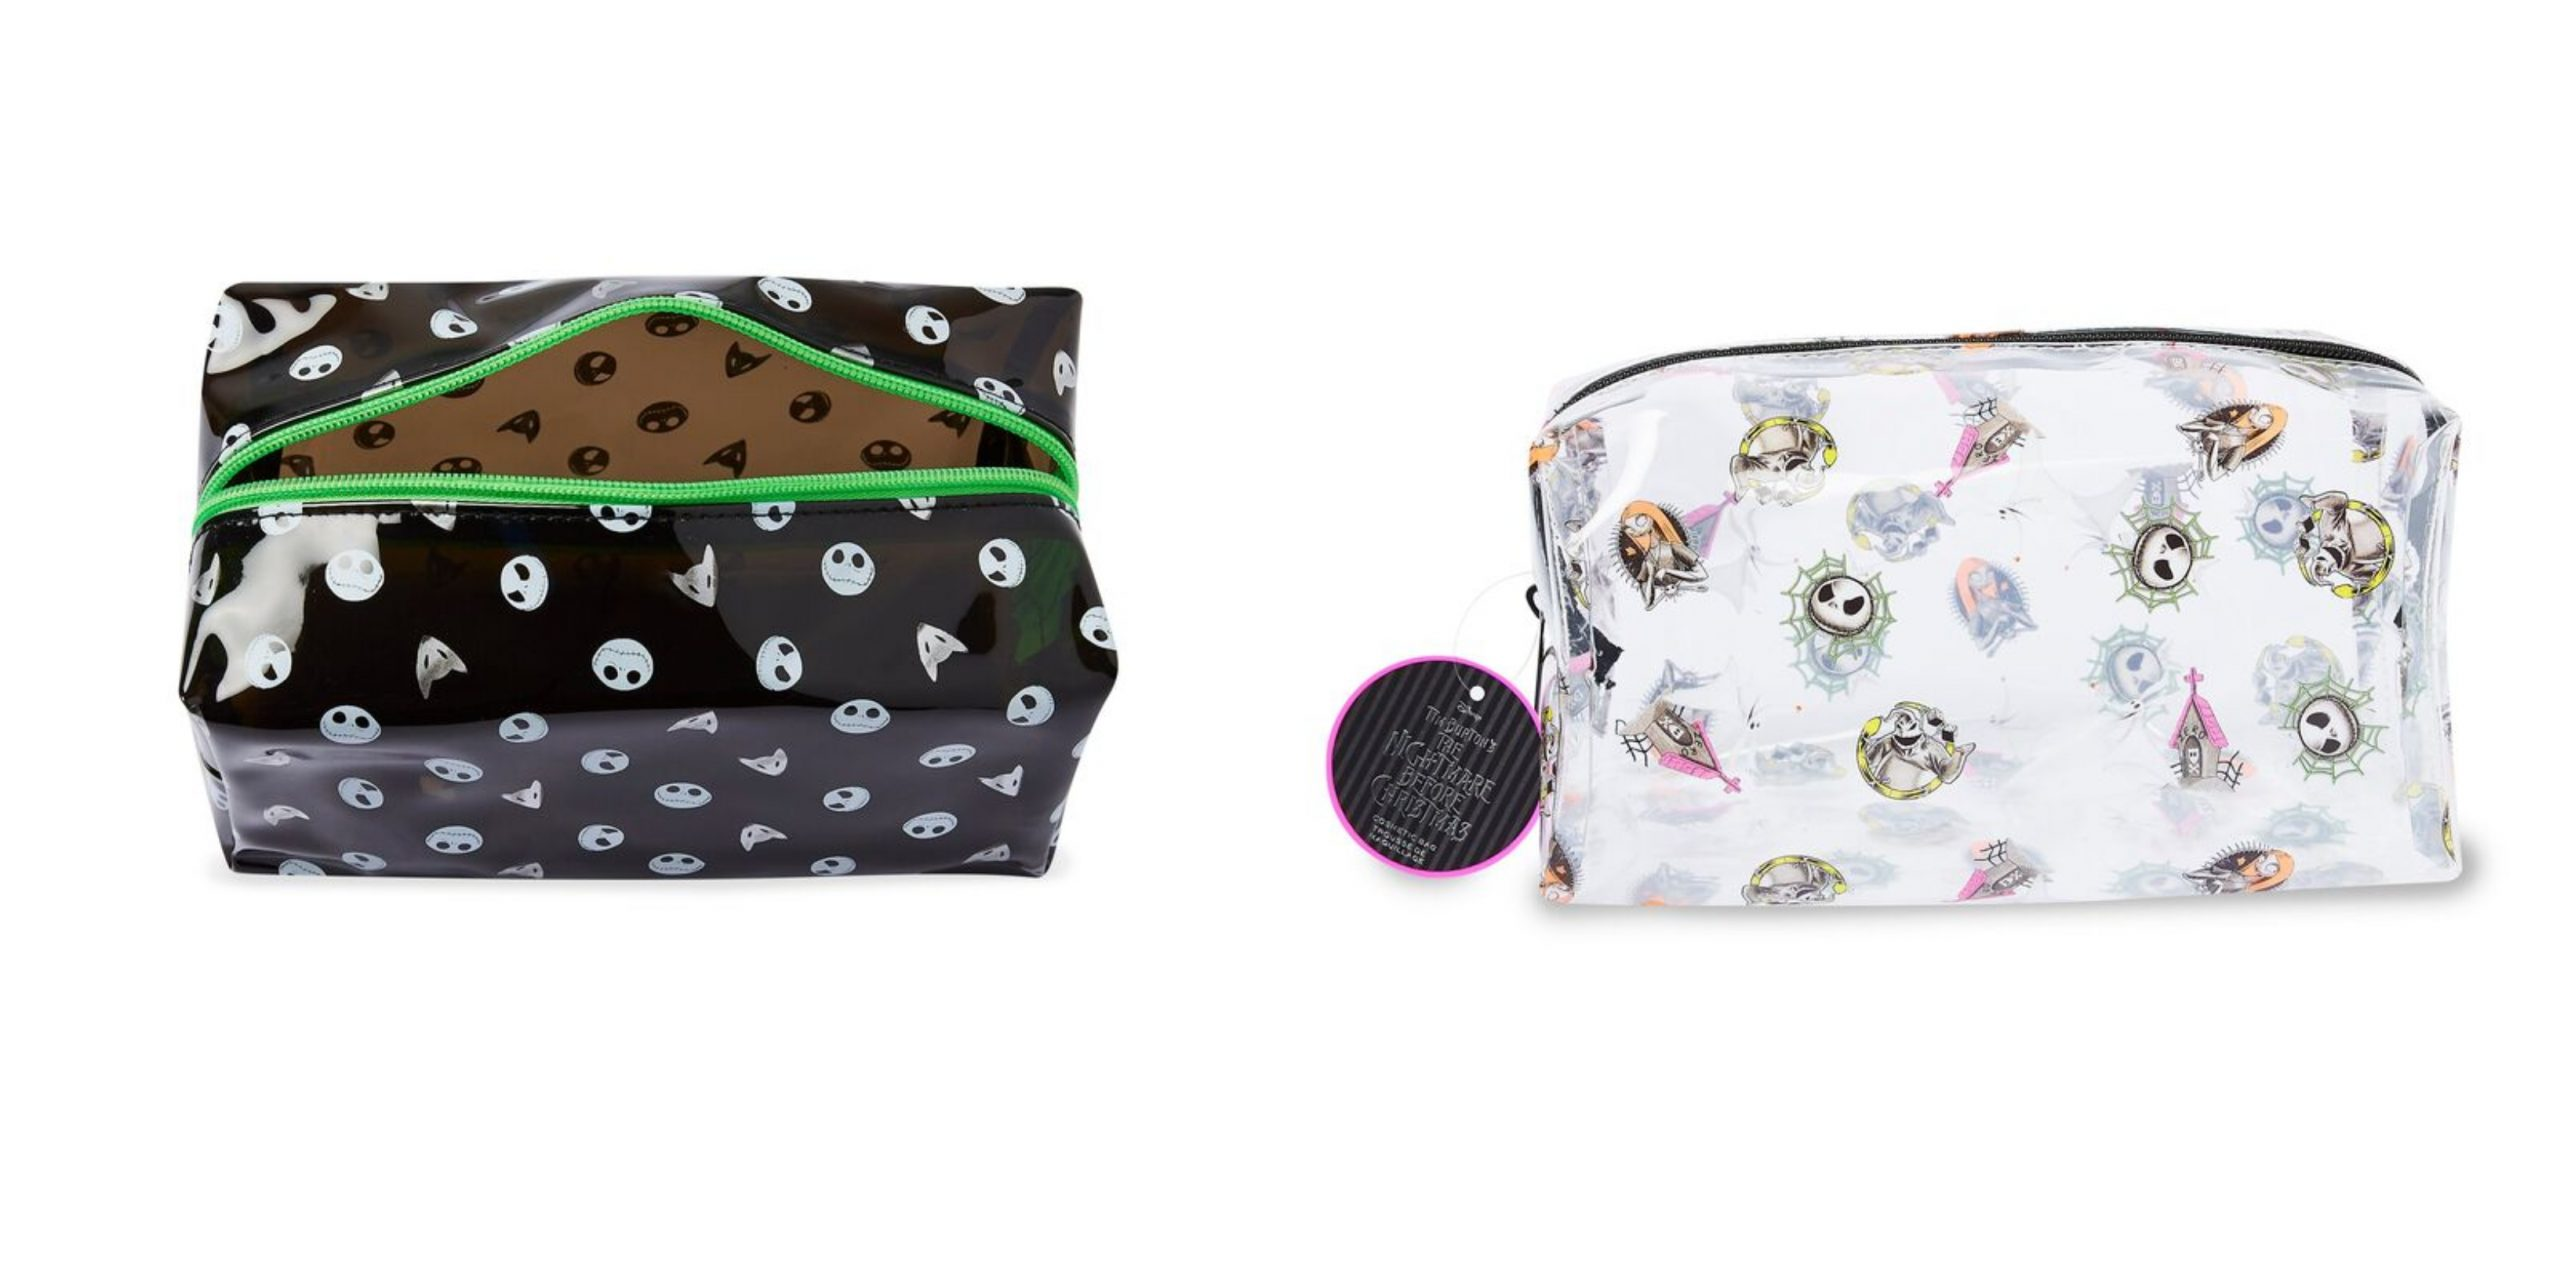 Makeup Revolution x The Nightmare Before Christmas cosmetics bags